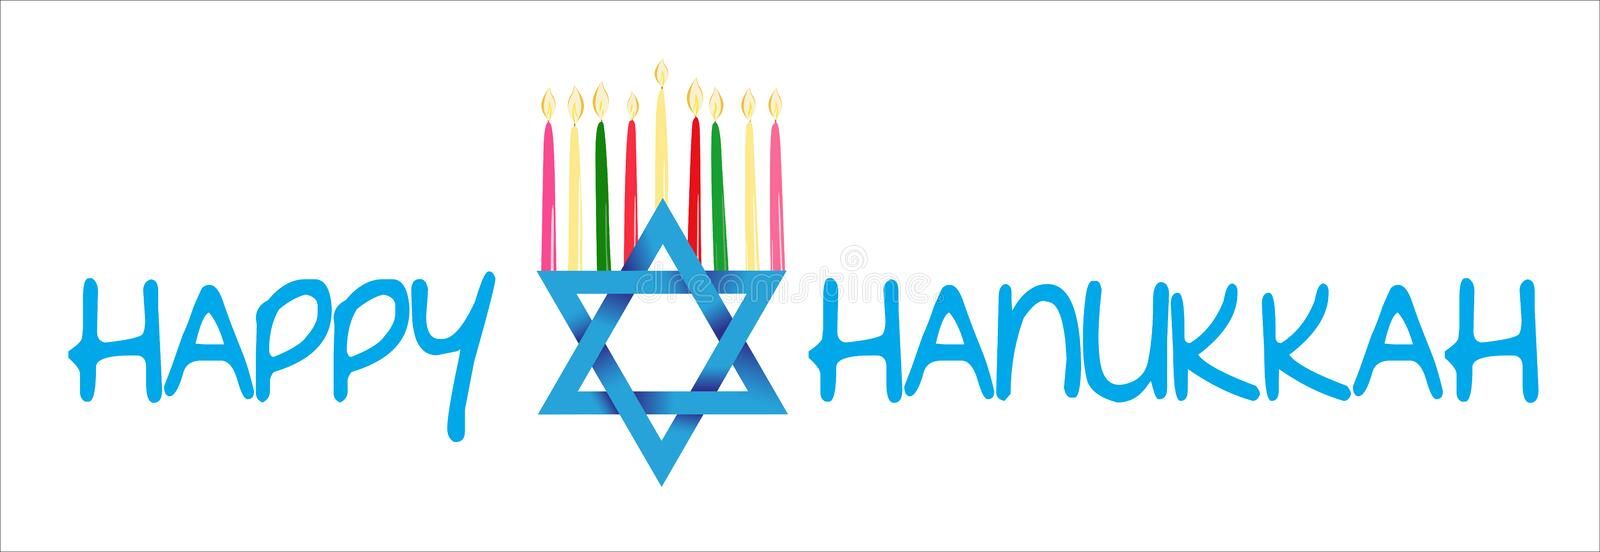 Stella di Davide e Menorah per Chanukah royalty illustrazione gratis